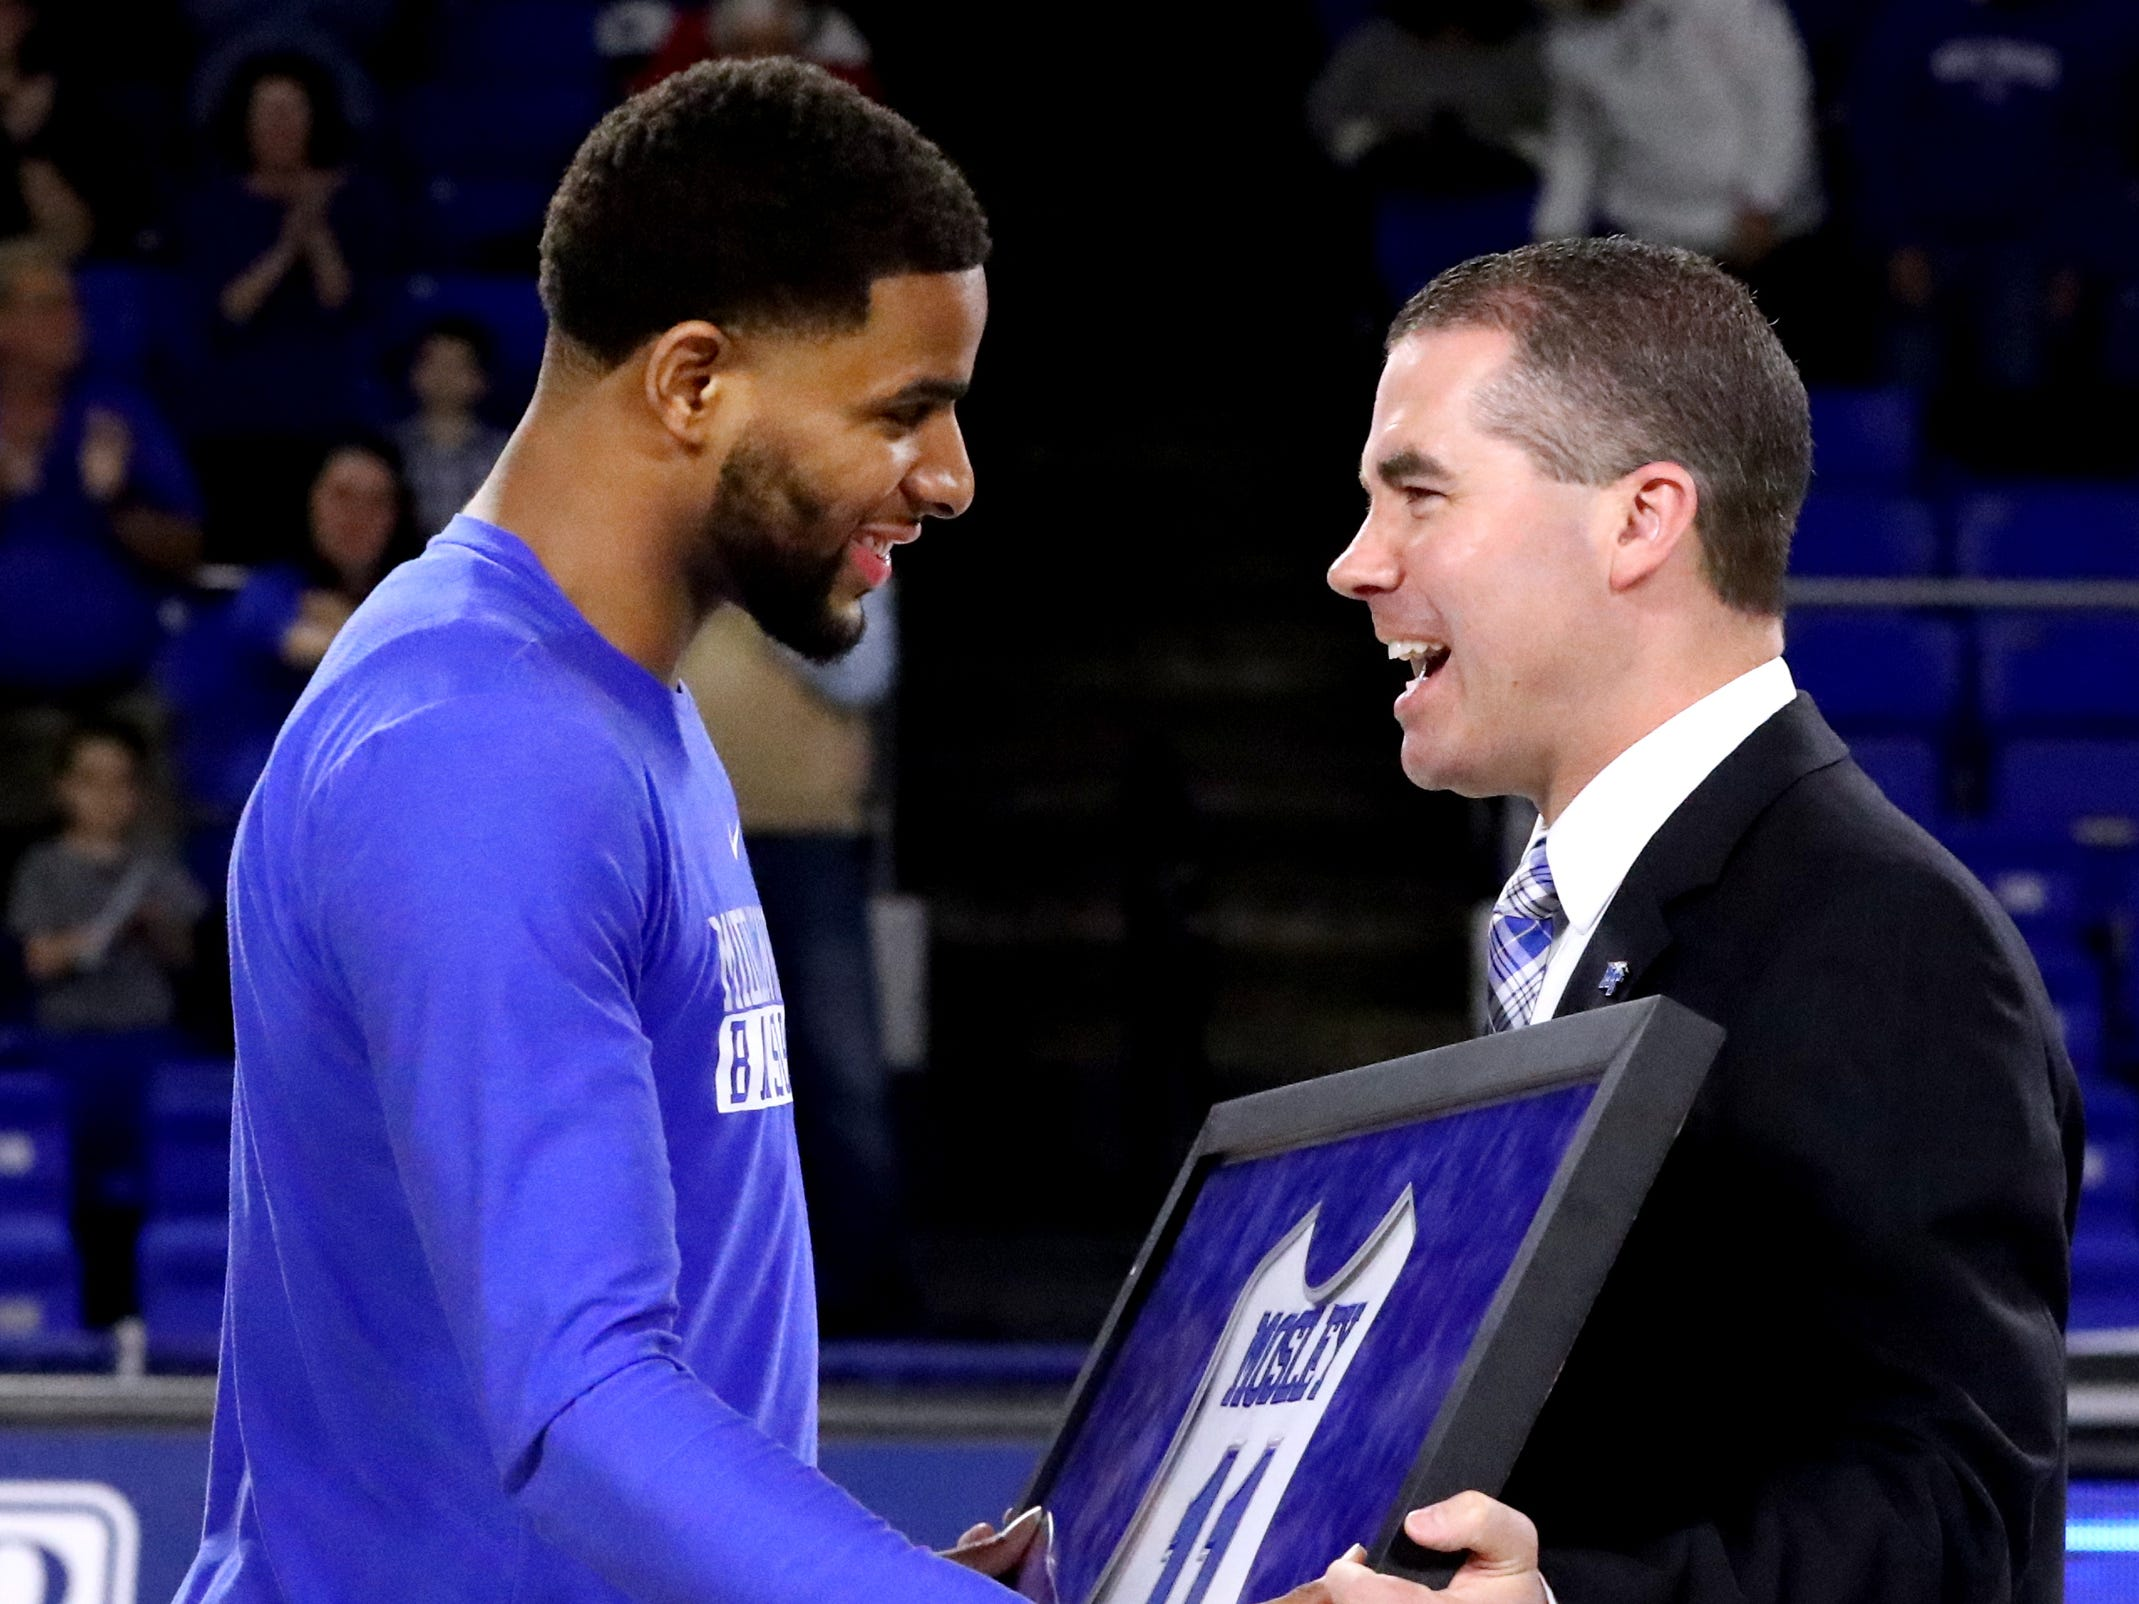 MTSU head coach Nick McDevitt honors MTSU senior guard Lawrence Mosley (11) with a framed jersey during MTSU's senior night before the game against UTEP on Saturday, March 9, 2019, at Murphy Center in Murfreesboro, Tenn.